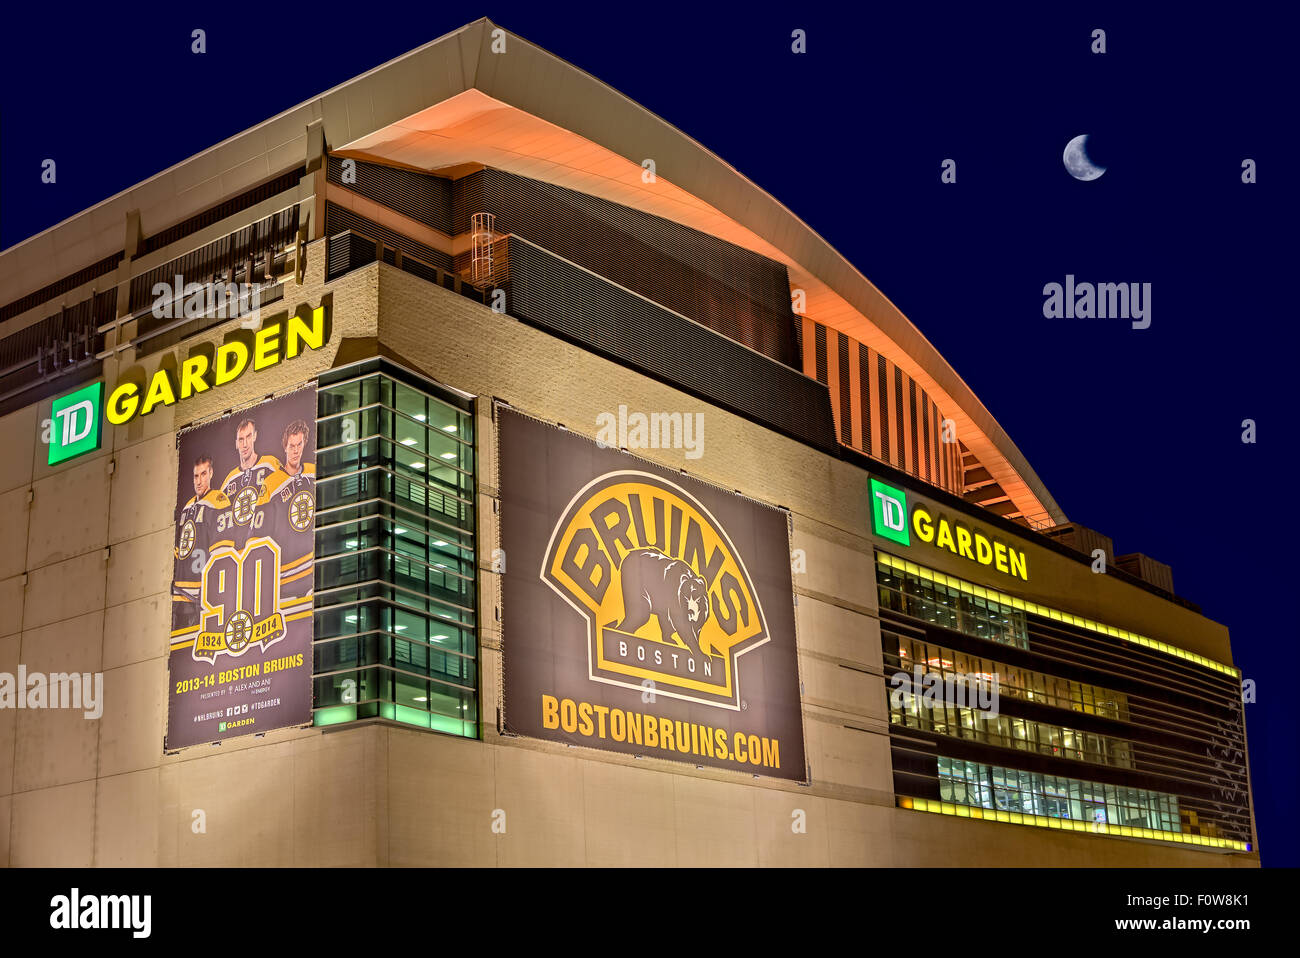 Exterior view to Boston Bruins TD Garden illuminated at night